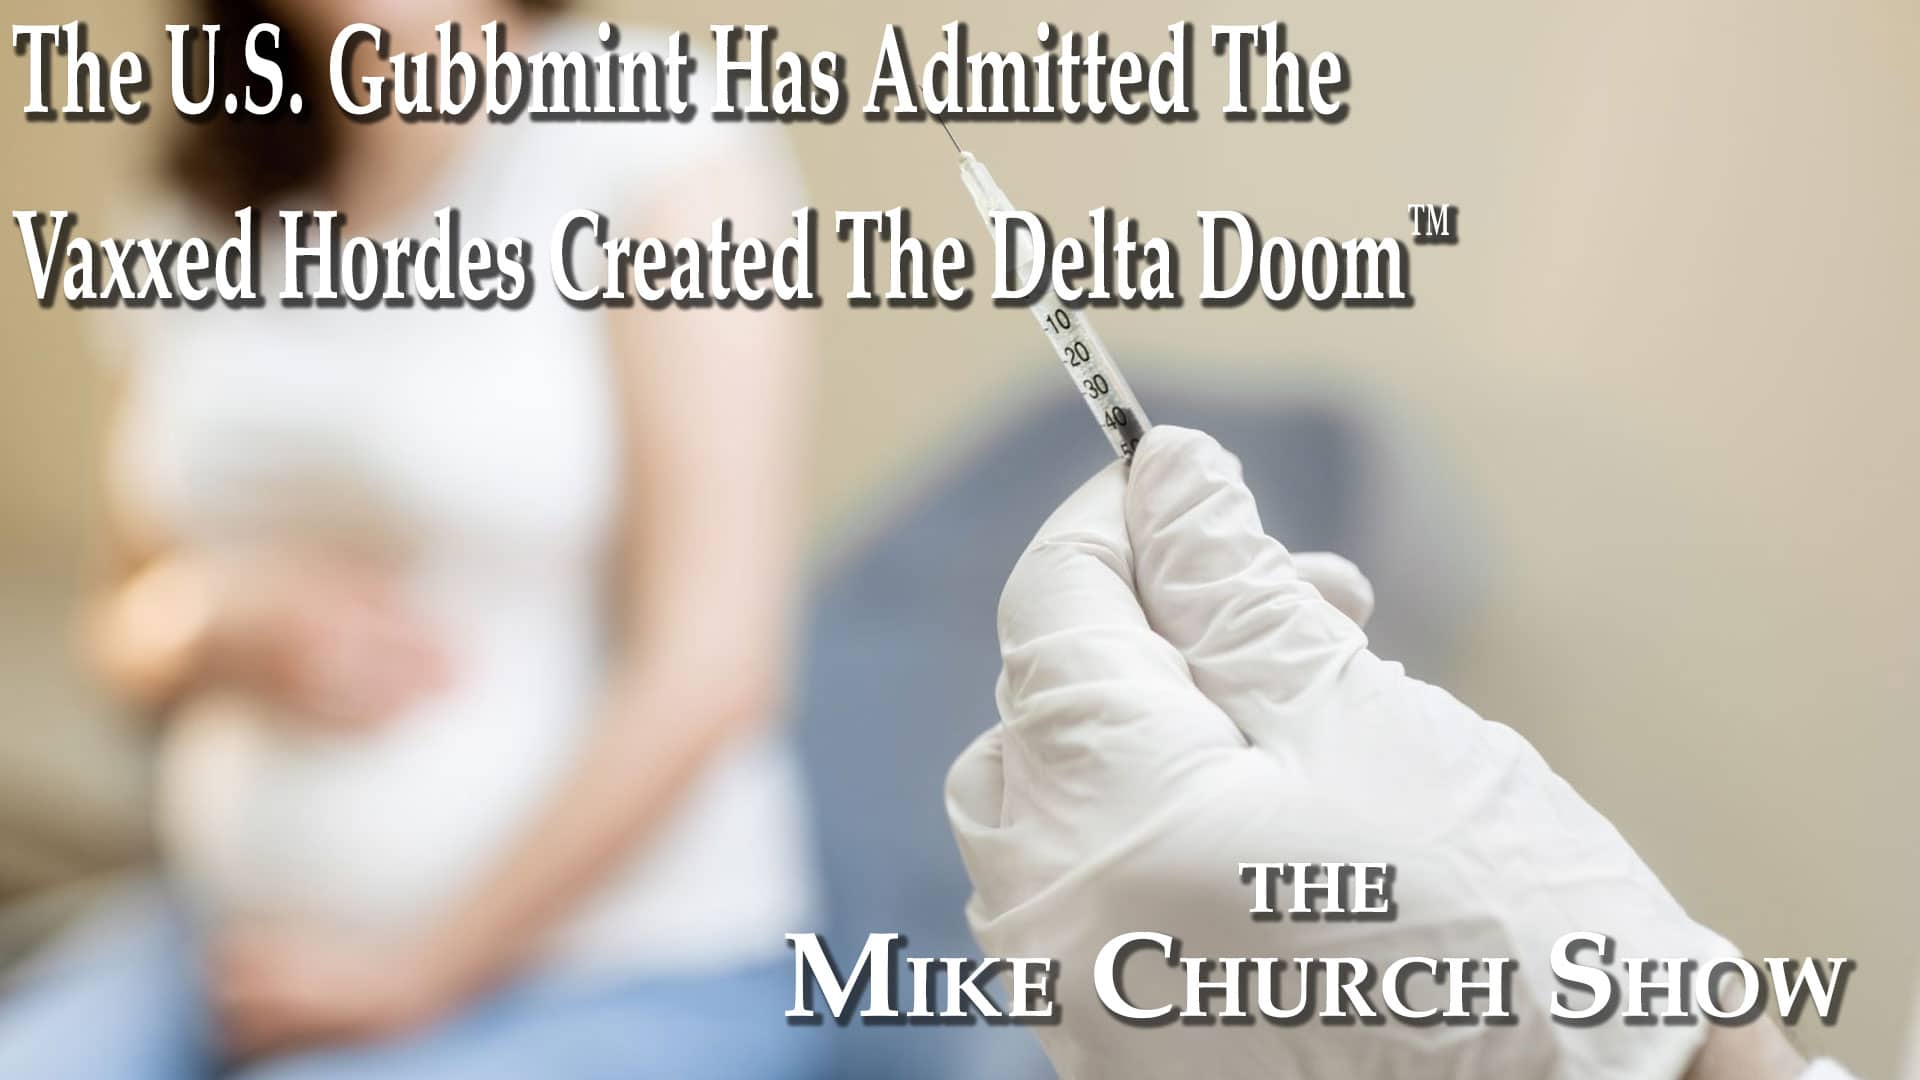 The U.S. Gubbmint Admits The Vaxxed Hordes Created The Delta Doom™-Mike Church Show Episode 1290